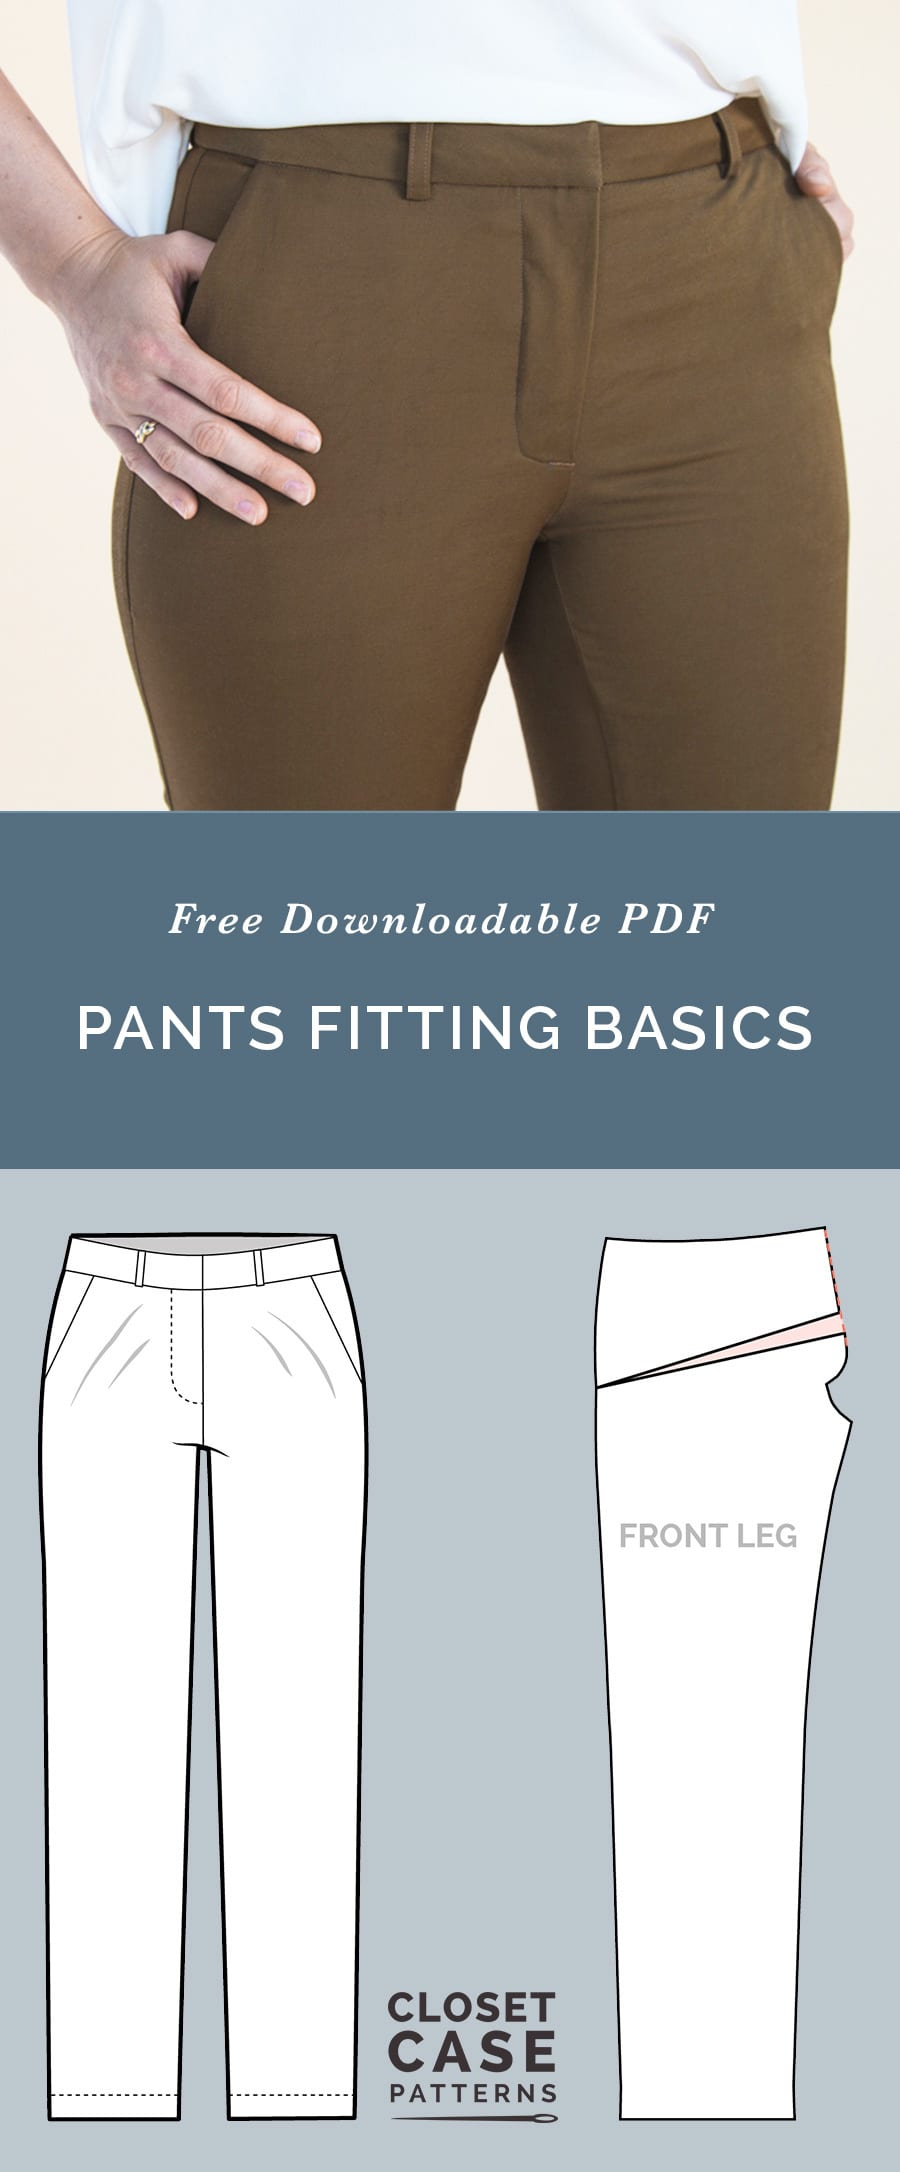 Pants Fitting Adjustments: Best Tips for Pants Fitting the